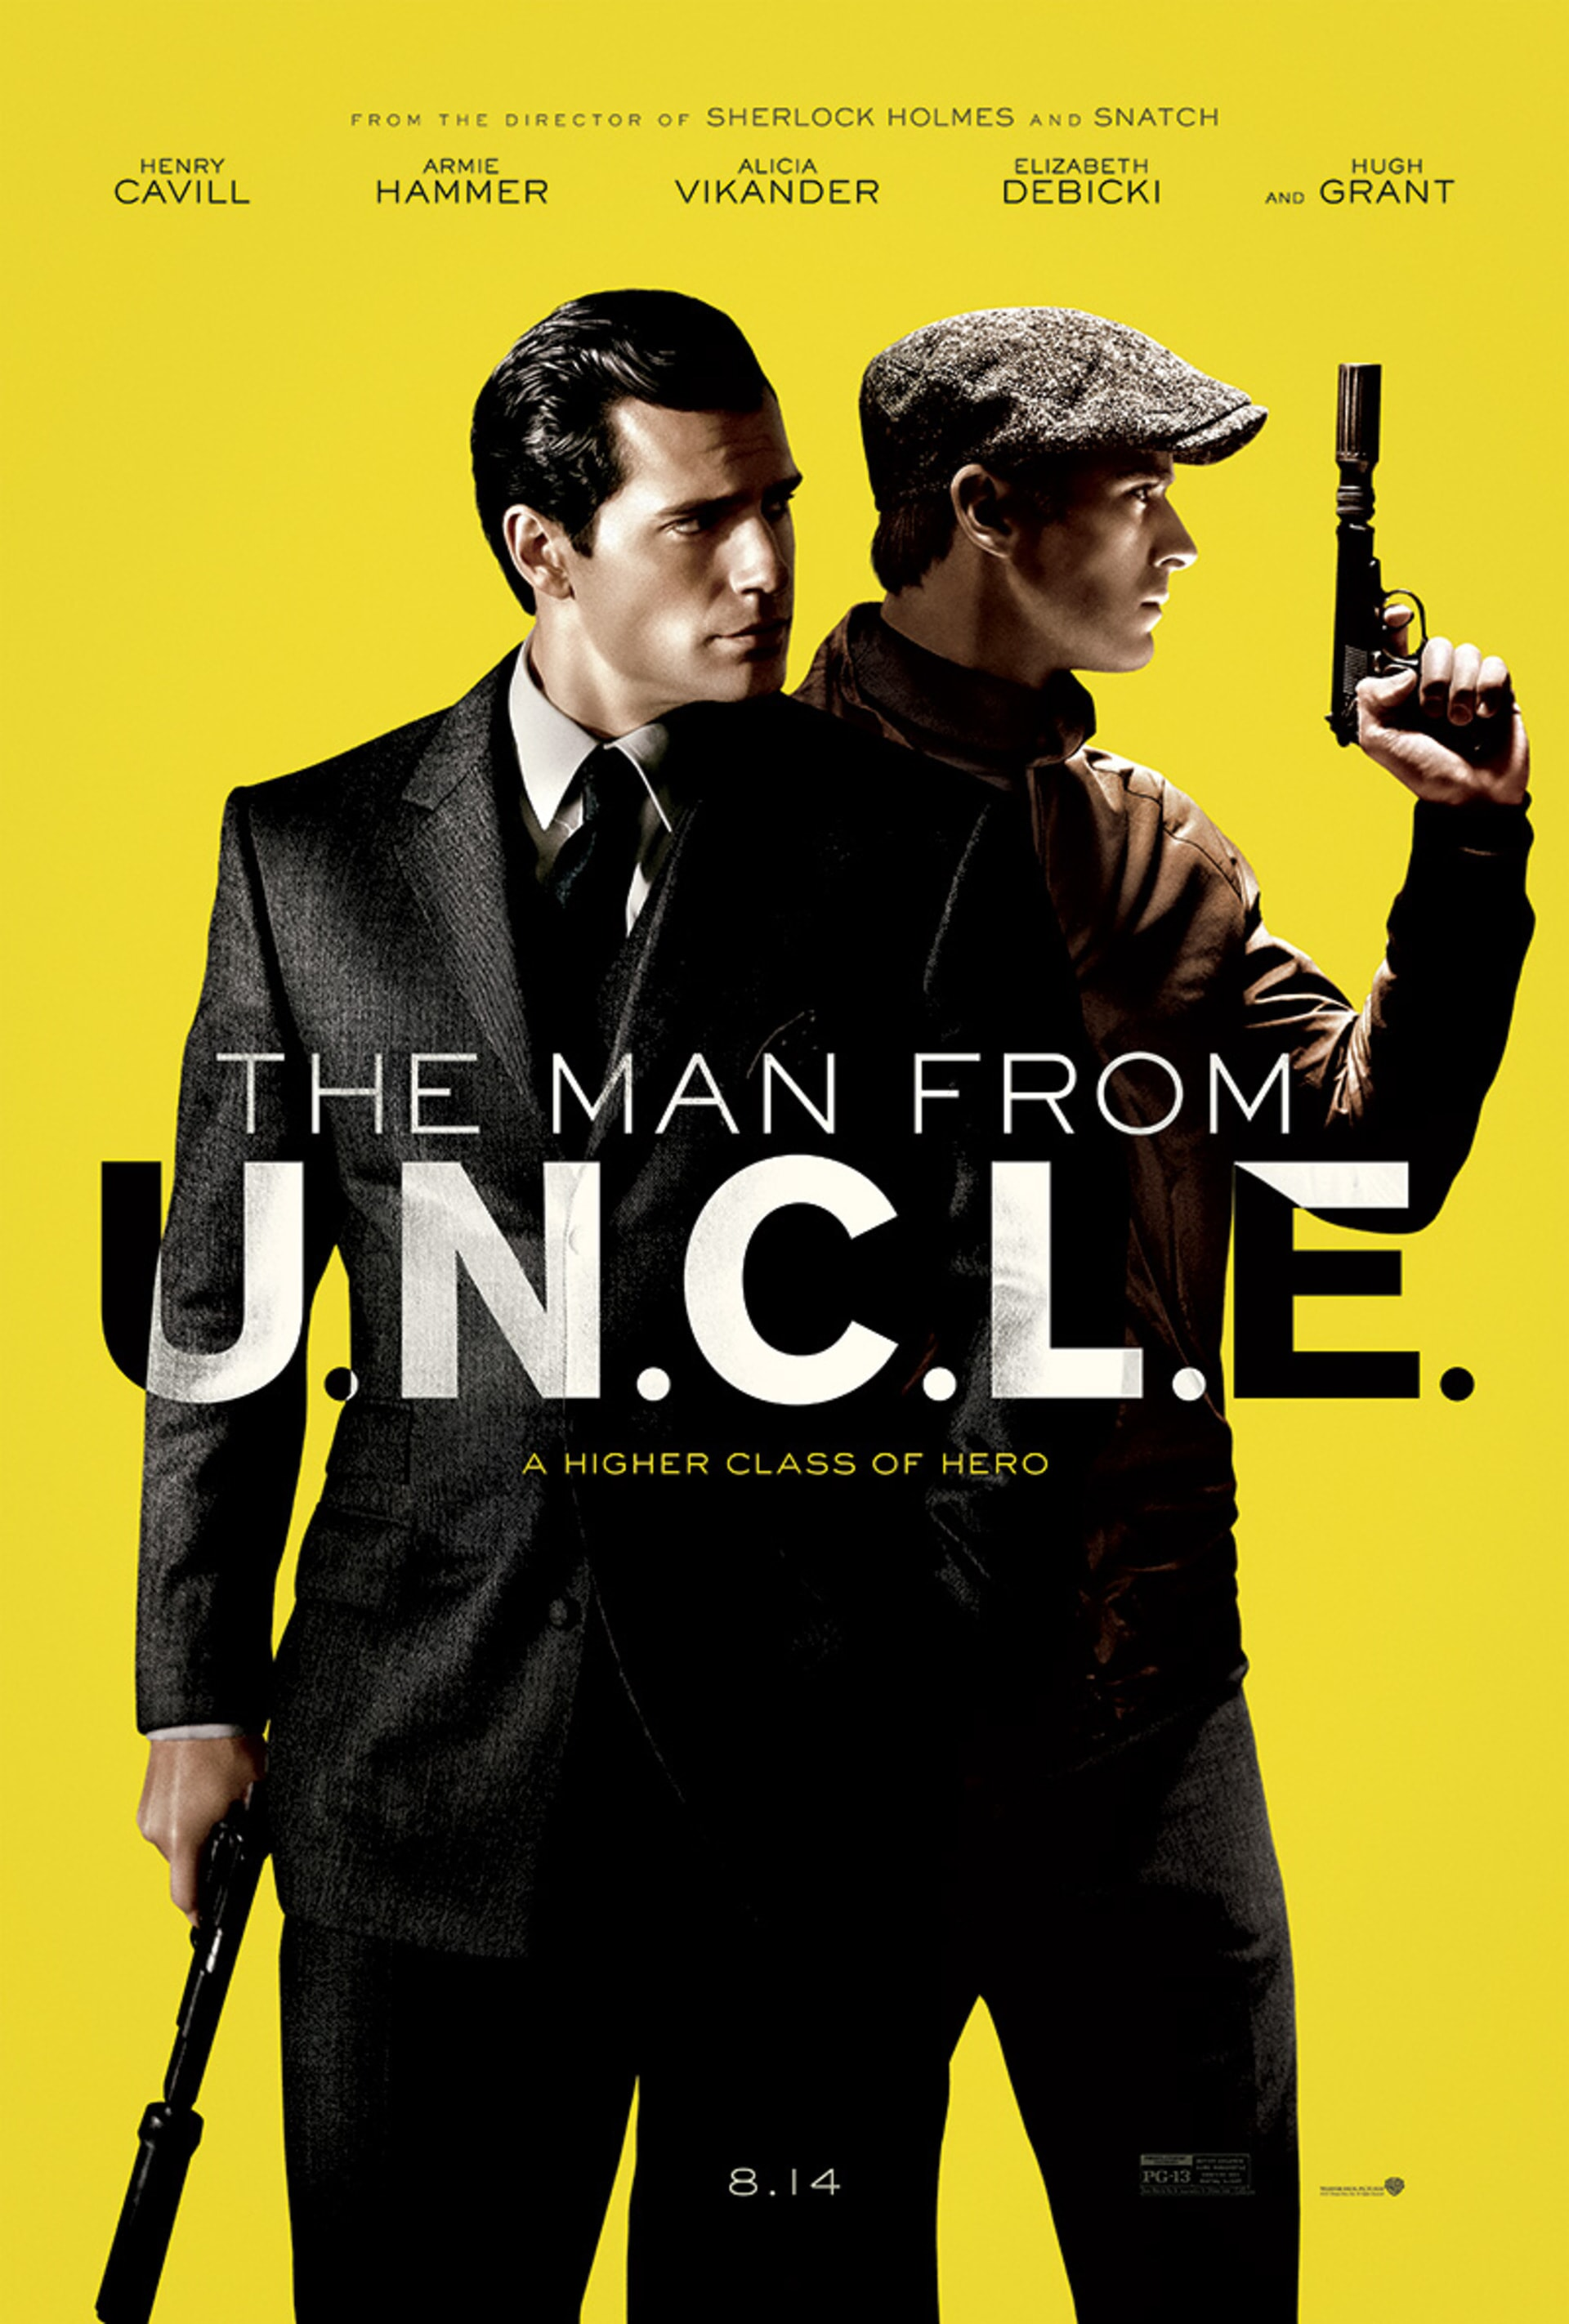 The Man From U.N.C.L.E. - Poster 2